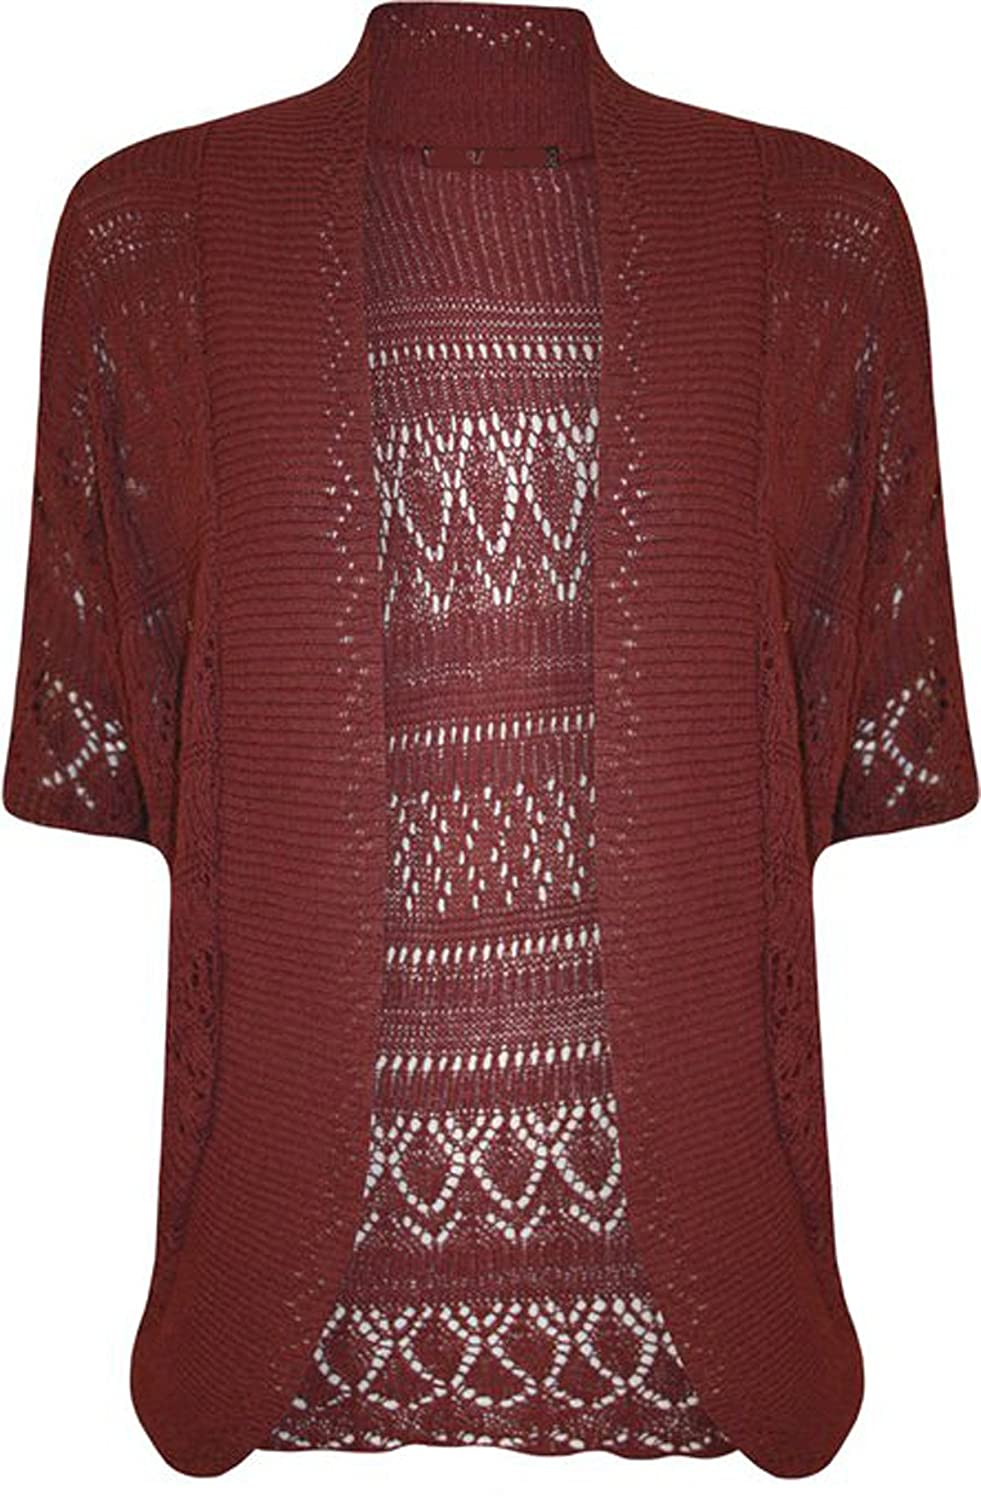 FashionMark Women's Plus Size Crochet Knitted Cardigan Shrug